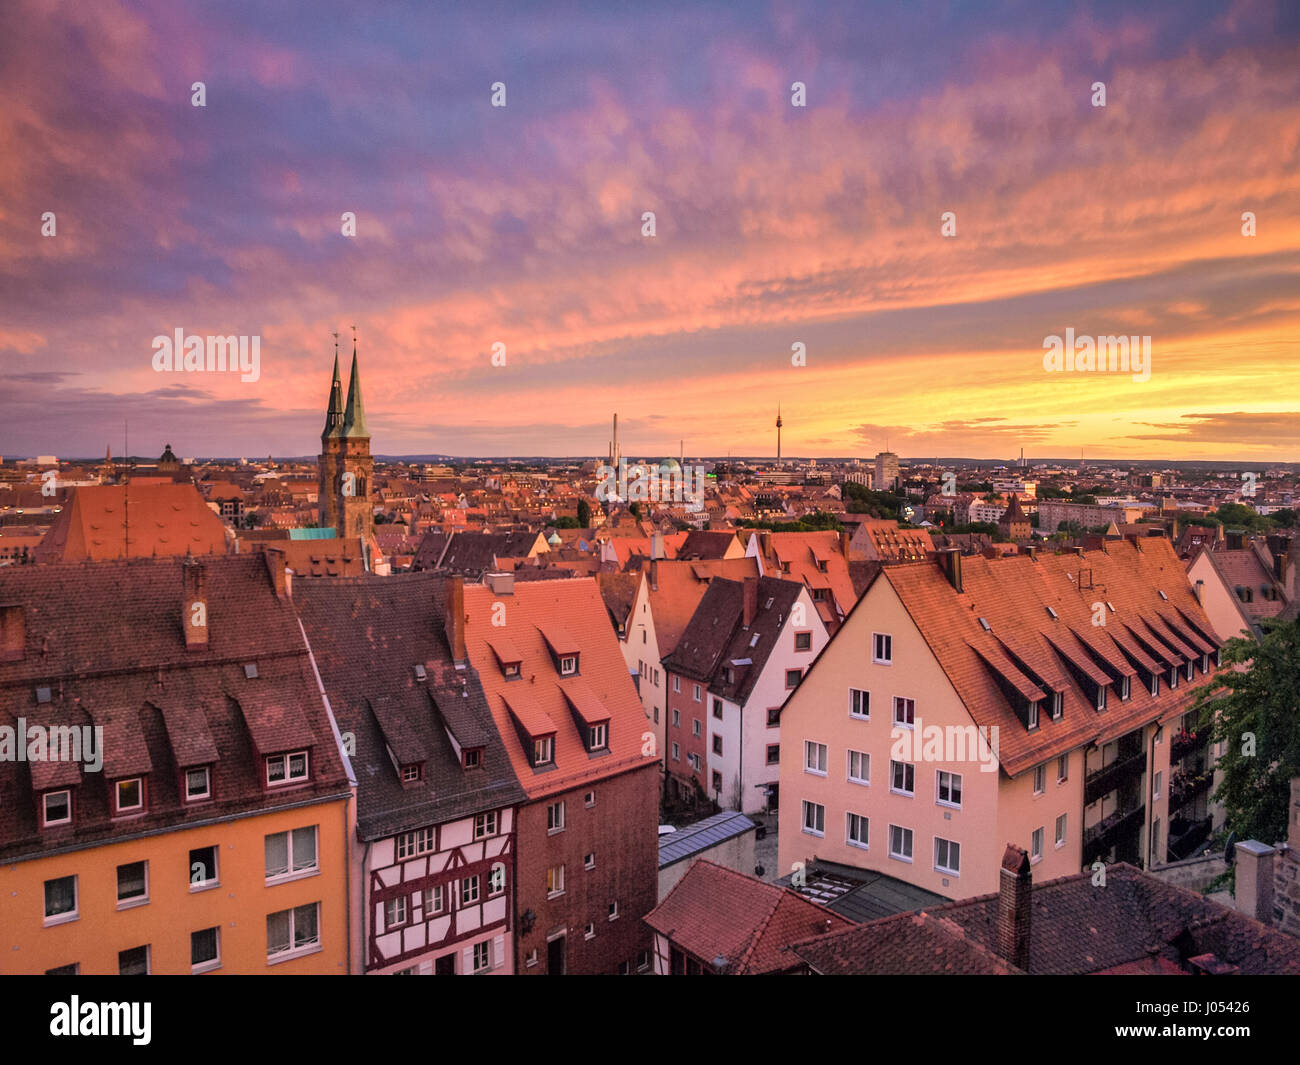 Panoramic view of the historic city of Nuremberg illuminated in beautiful golden evening light with dramatic clouds - Stock Image